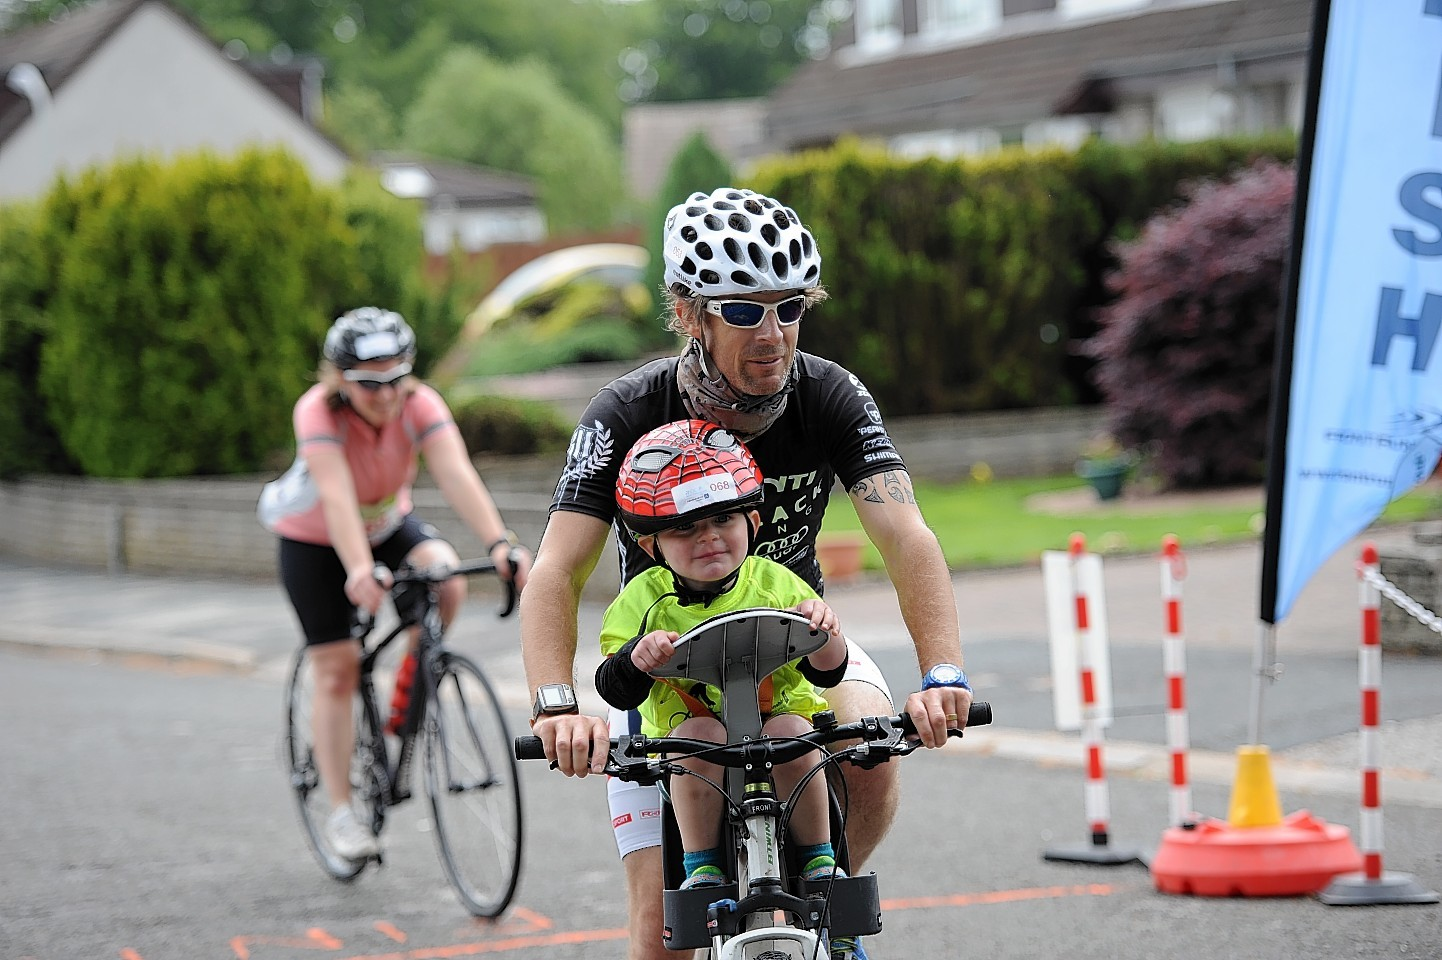 The Great Inverurie Bike Ride will take place later this month